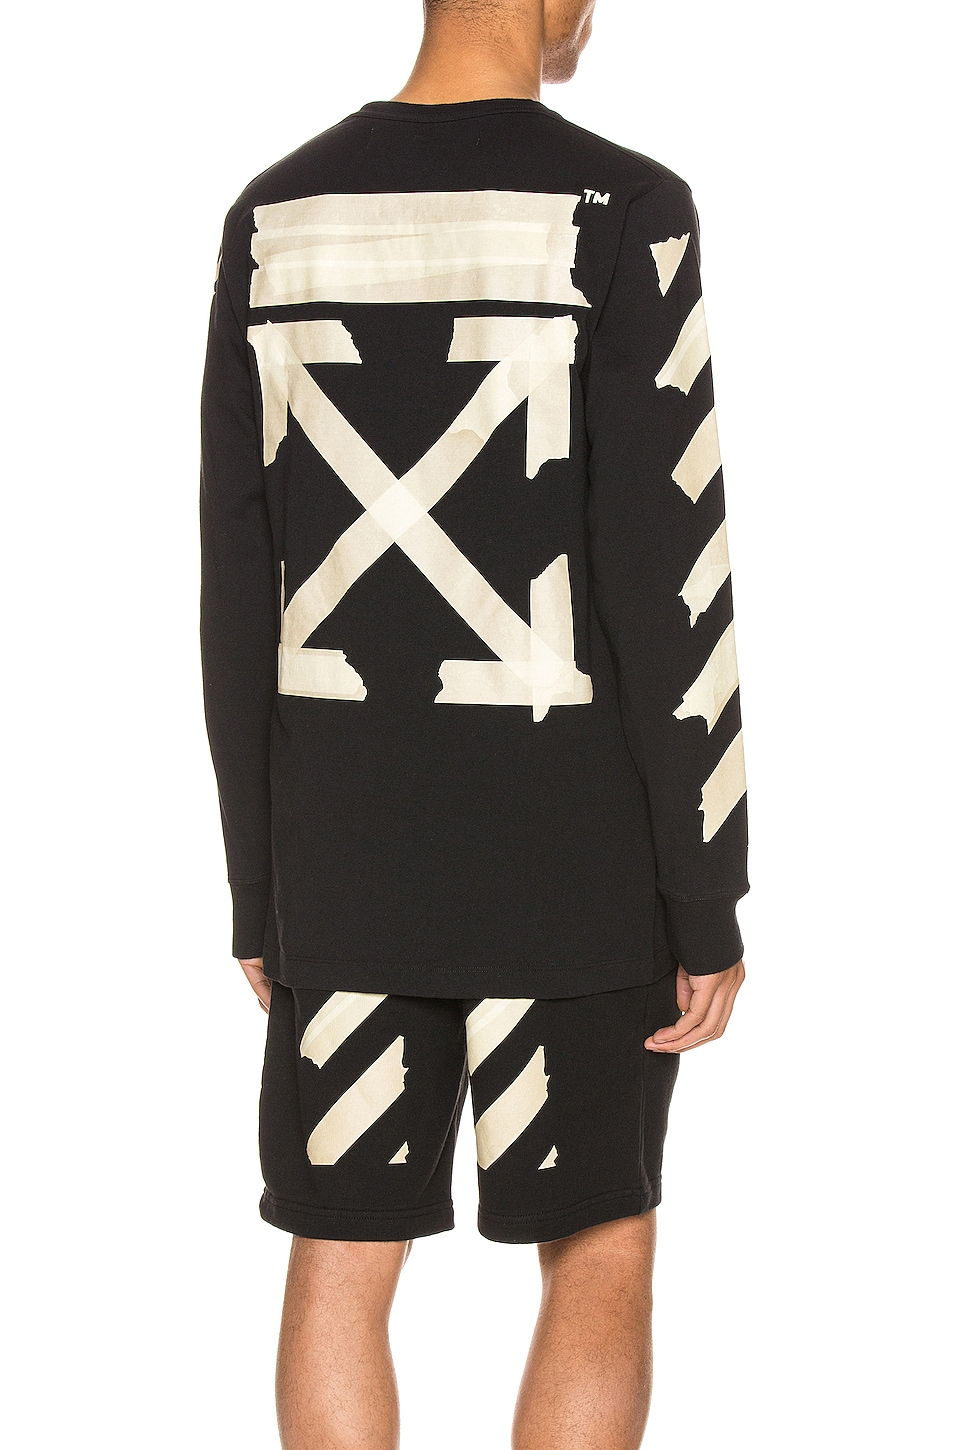 OFF-WHITE Tape Arrows Long Sleeve Tee in Black & Beige